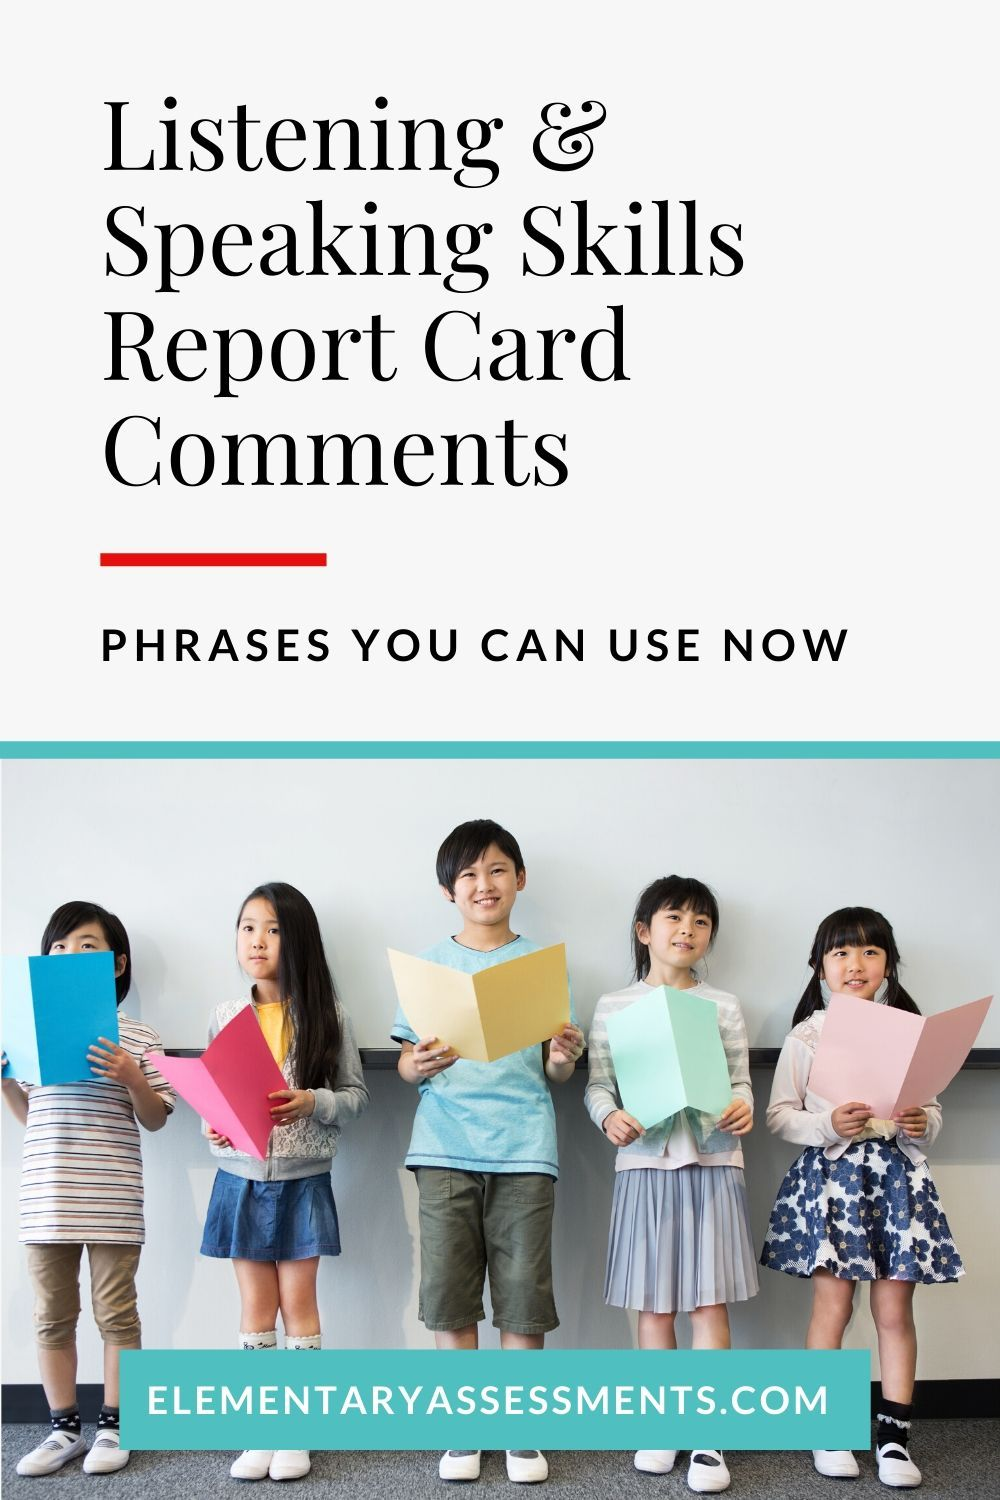 Listening speaking skills report card comments phrases